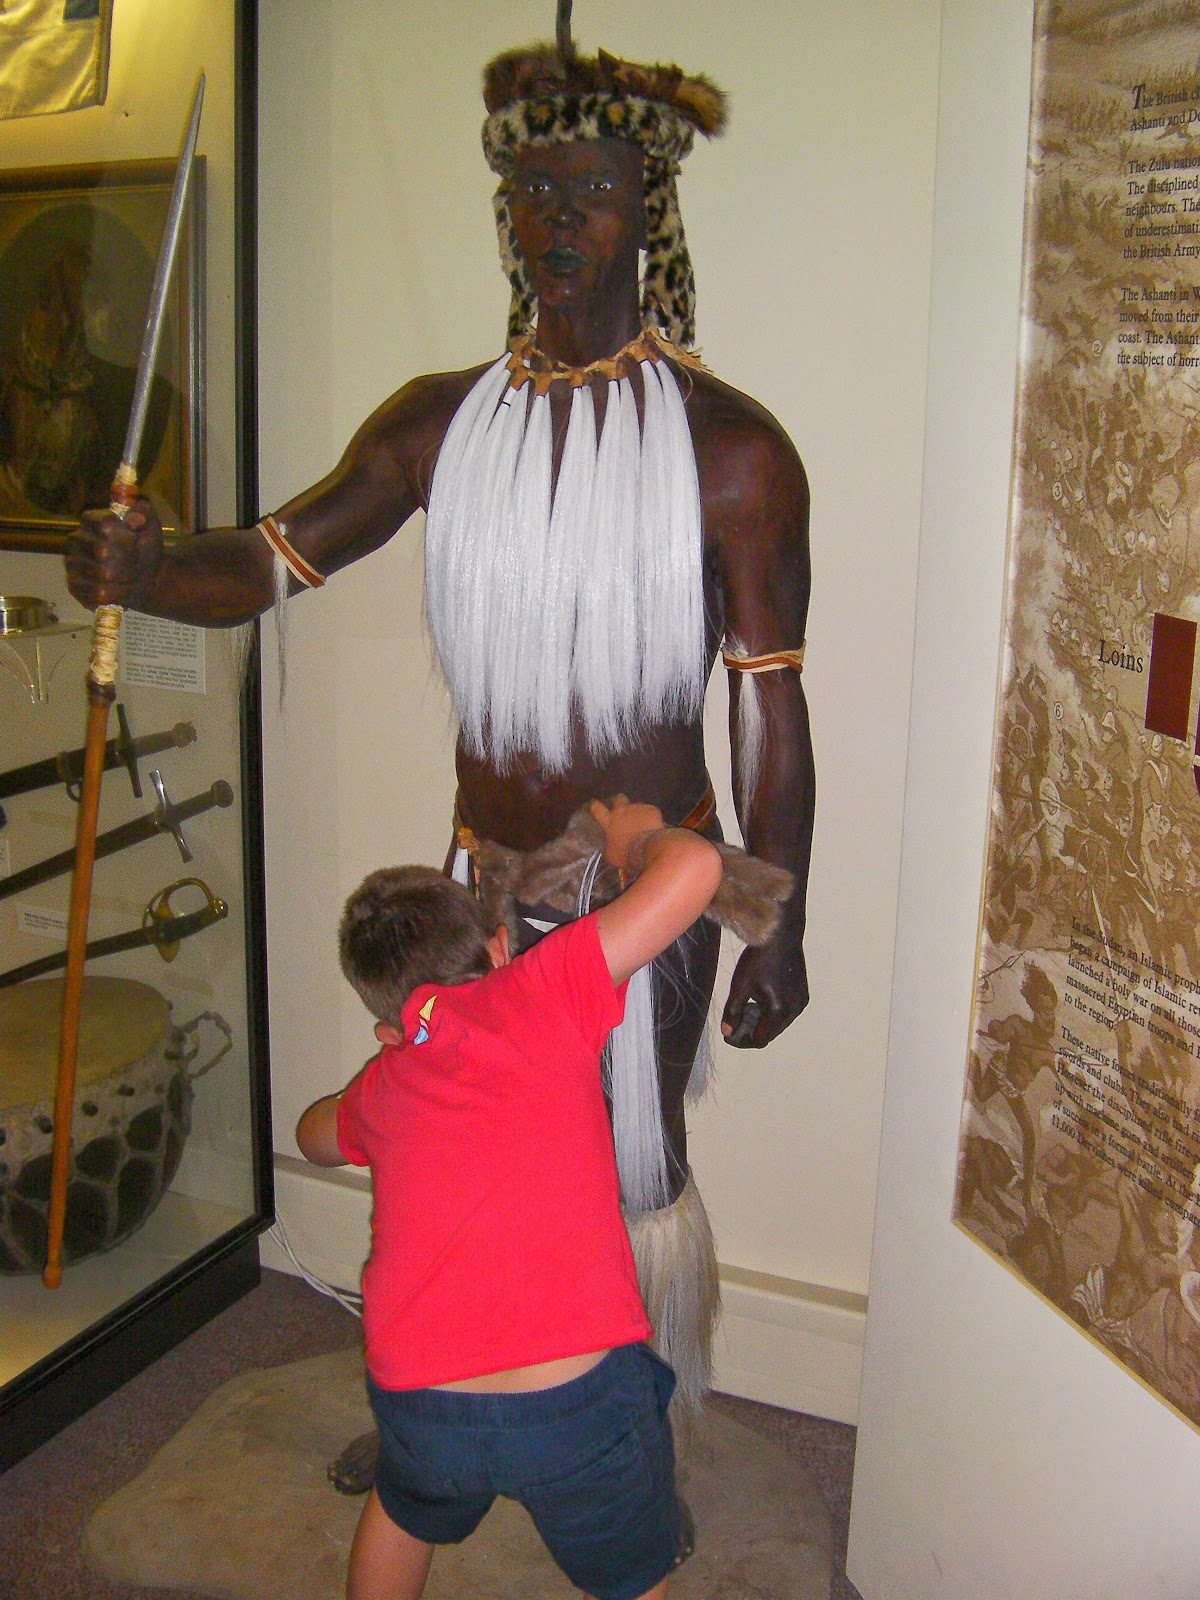 boy looking under grass skirt of museum exhibit